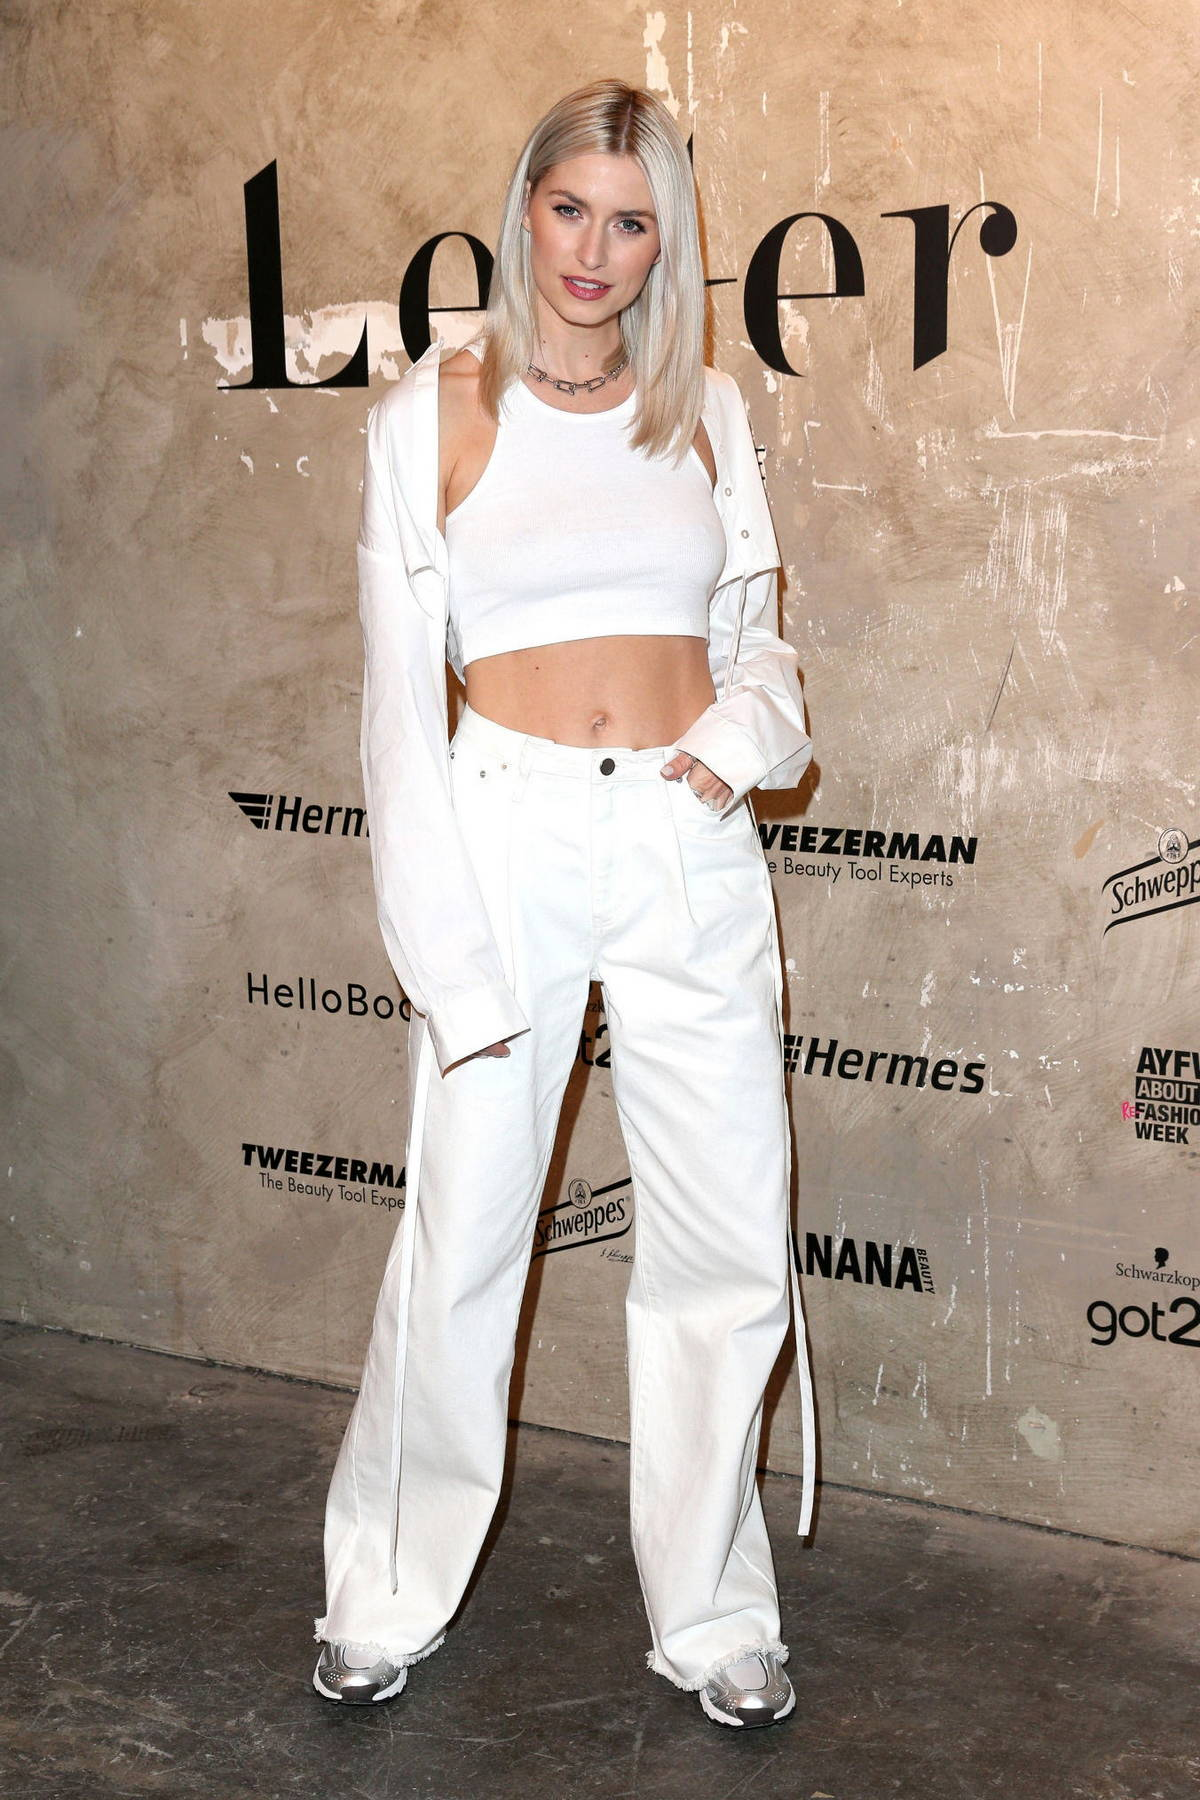 Lena Gercke attends the LeGer Fashion Show in Berlin, Germany